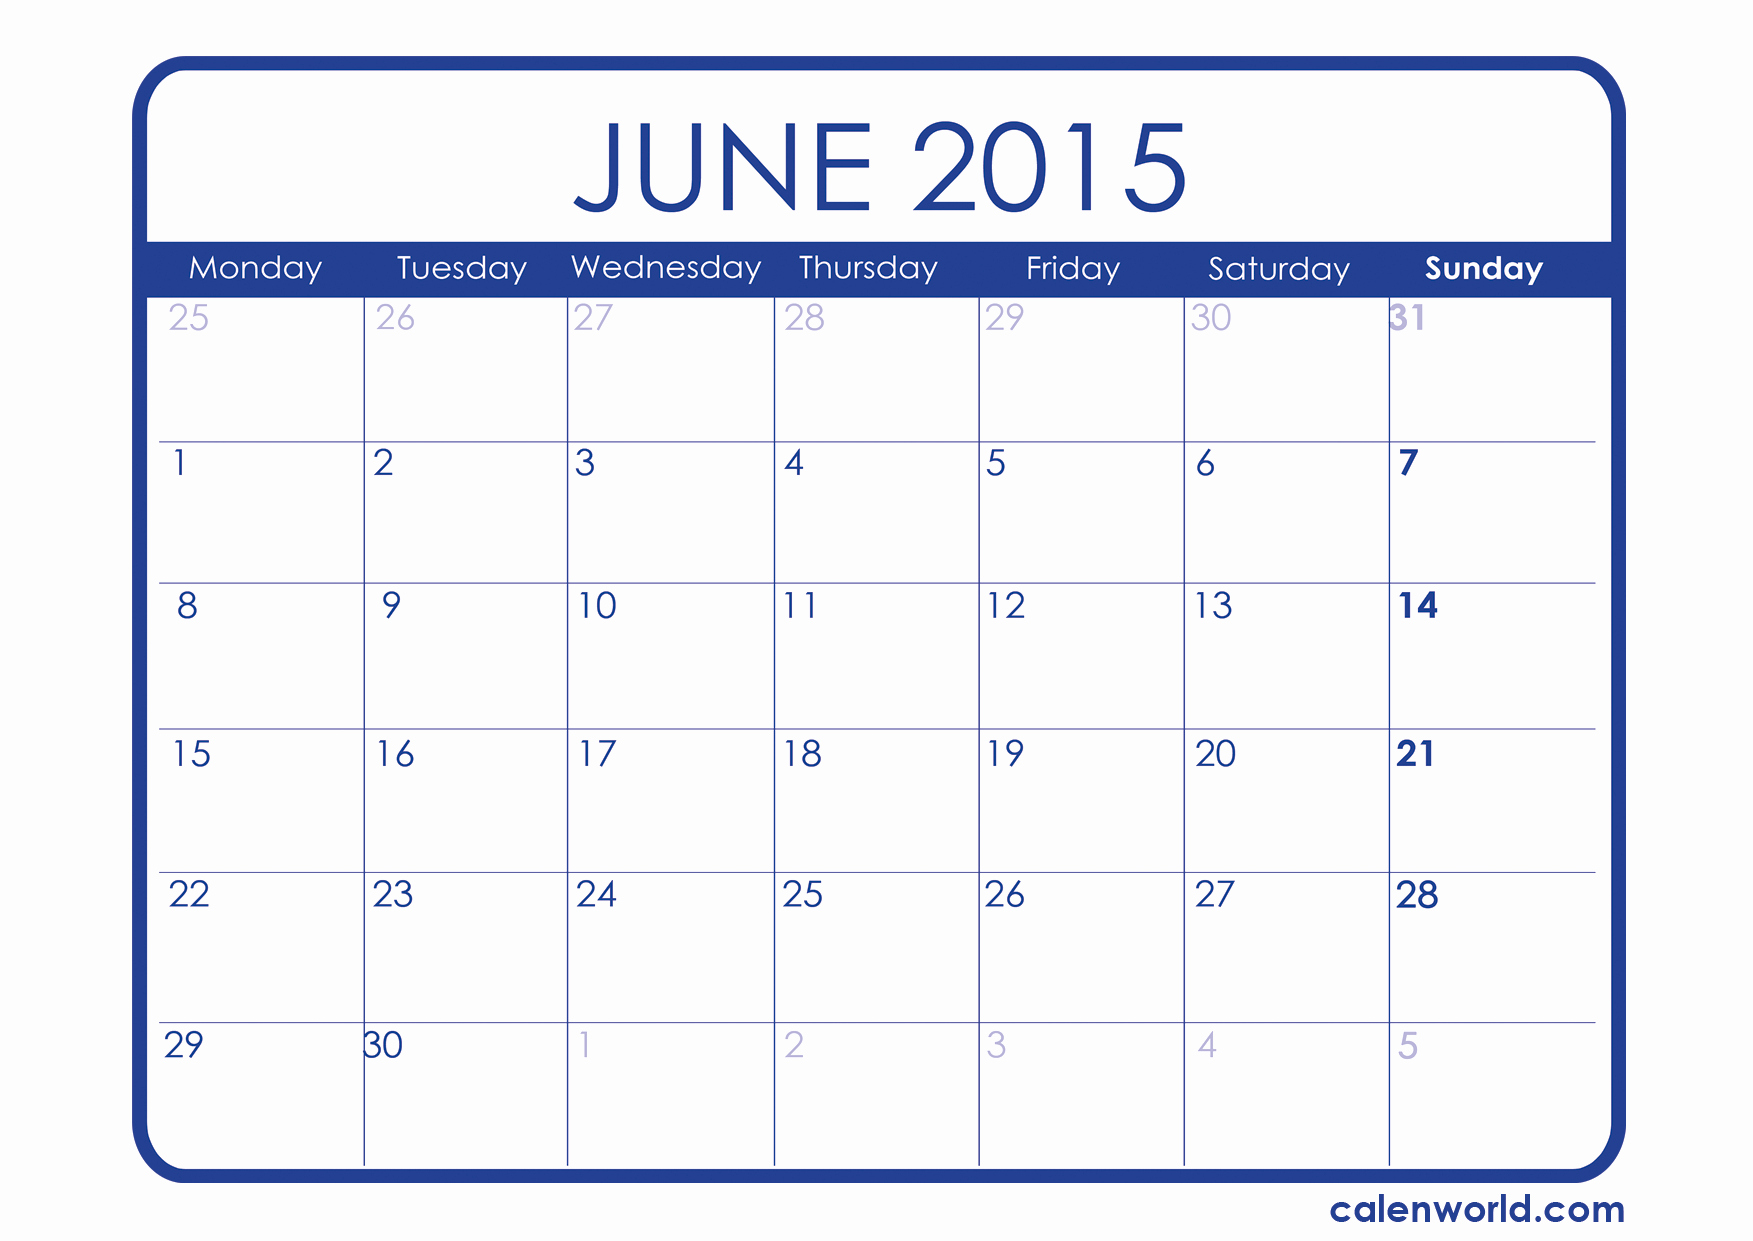 Calendar Template for June 2015 Awesome June 2015 Calendar